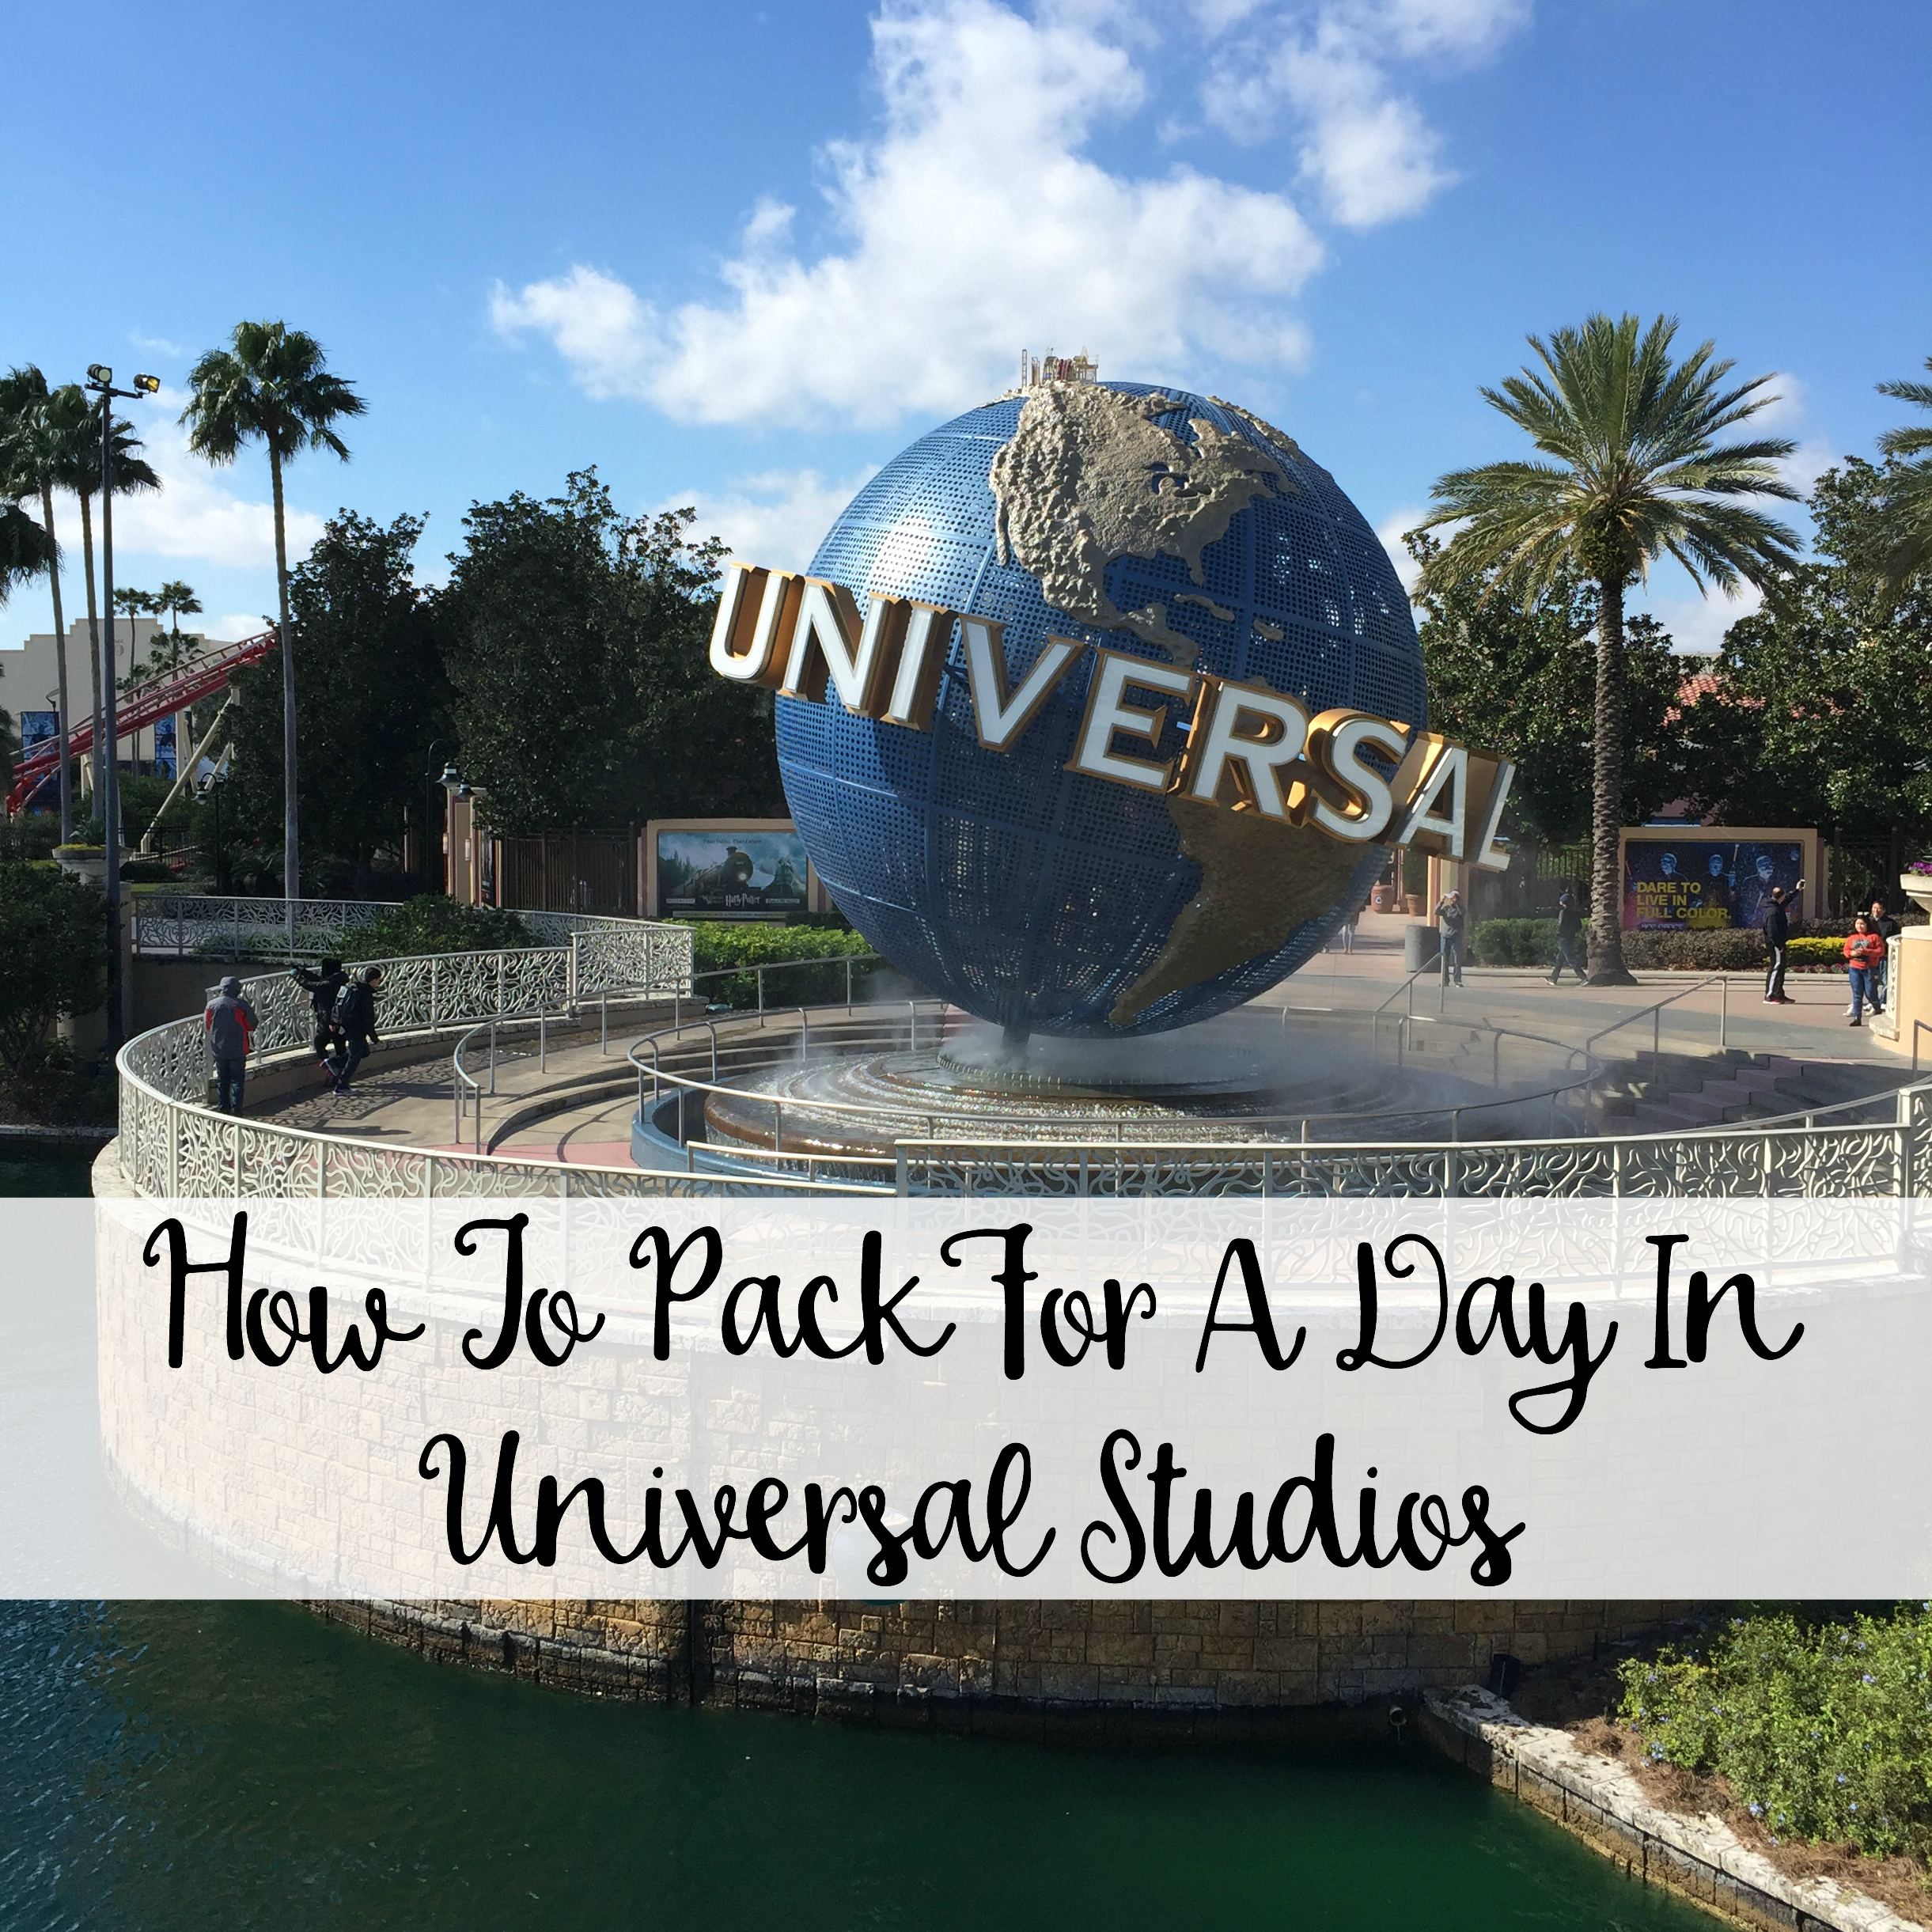 Can You Bring Backpacks Into Disney World: What To Pack For A Day In Universal Studios